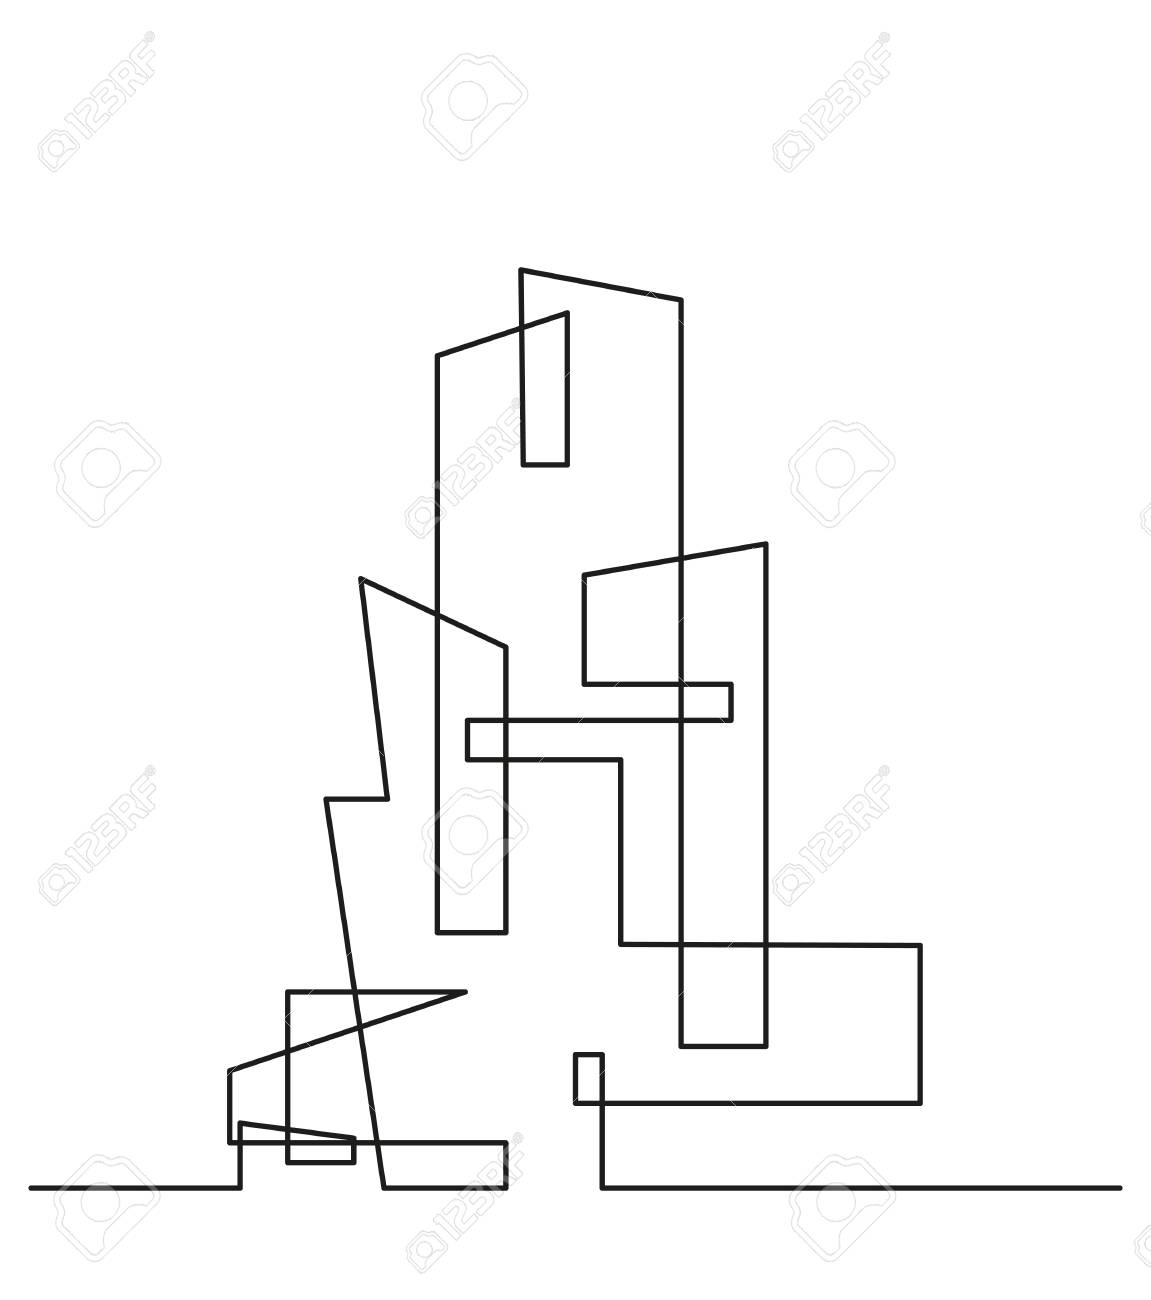 modern architecture drawing. Wonderful Architecture Archivio Fotografico  Continuous Line Drawing Modern Building  Construction Silhouette Of The City In A Flat Style Vector Illustration In Architecture Drawing